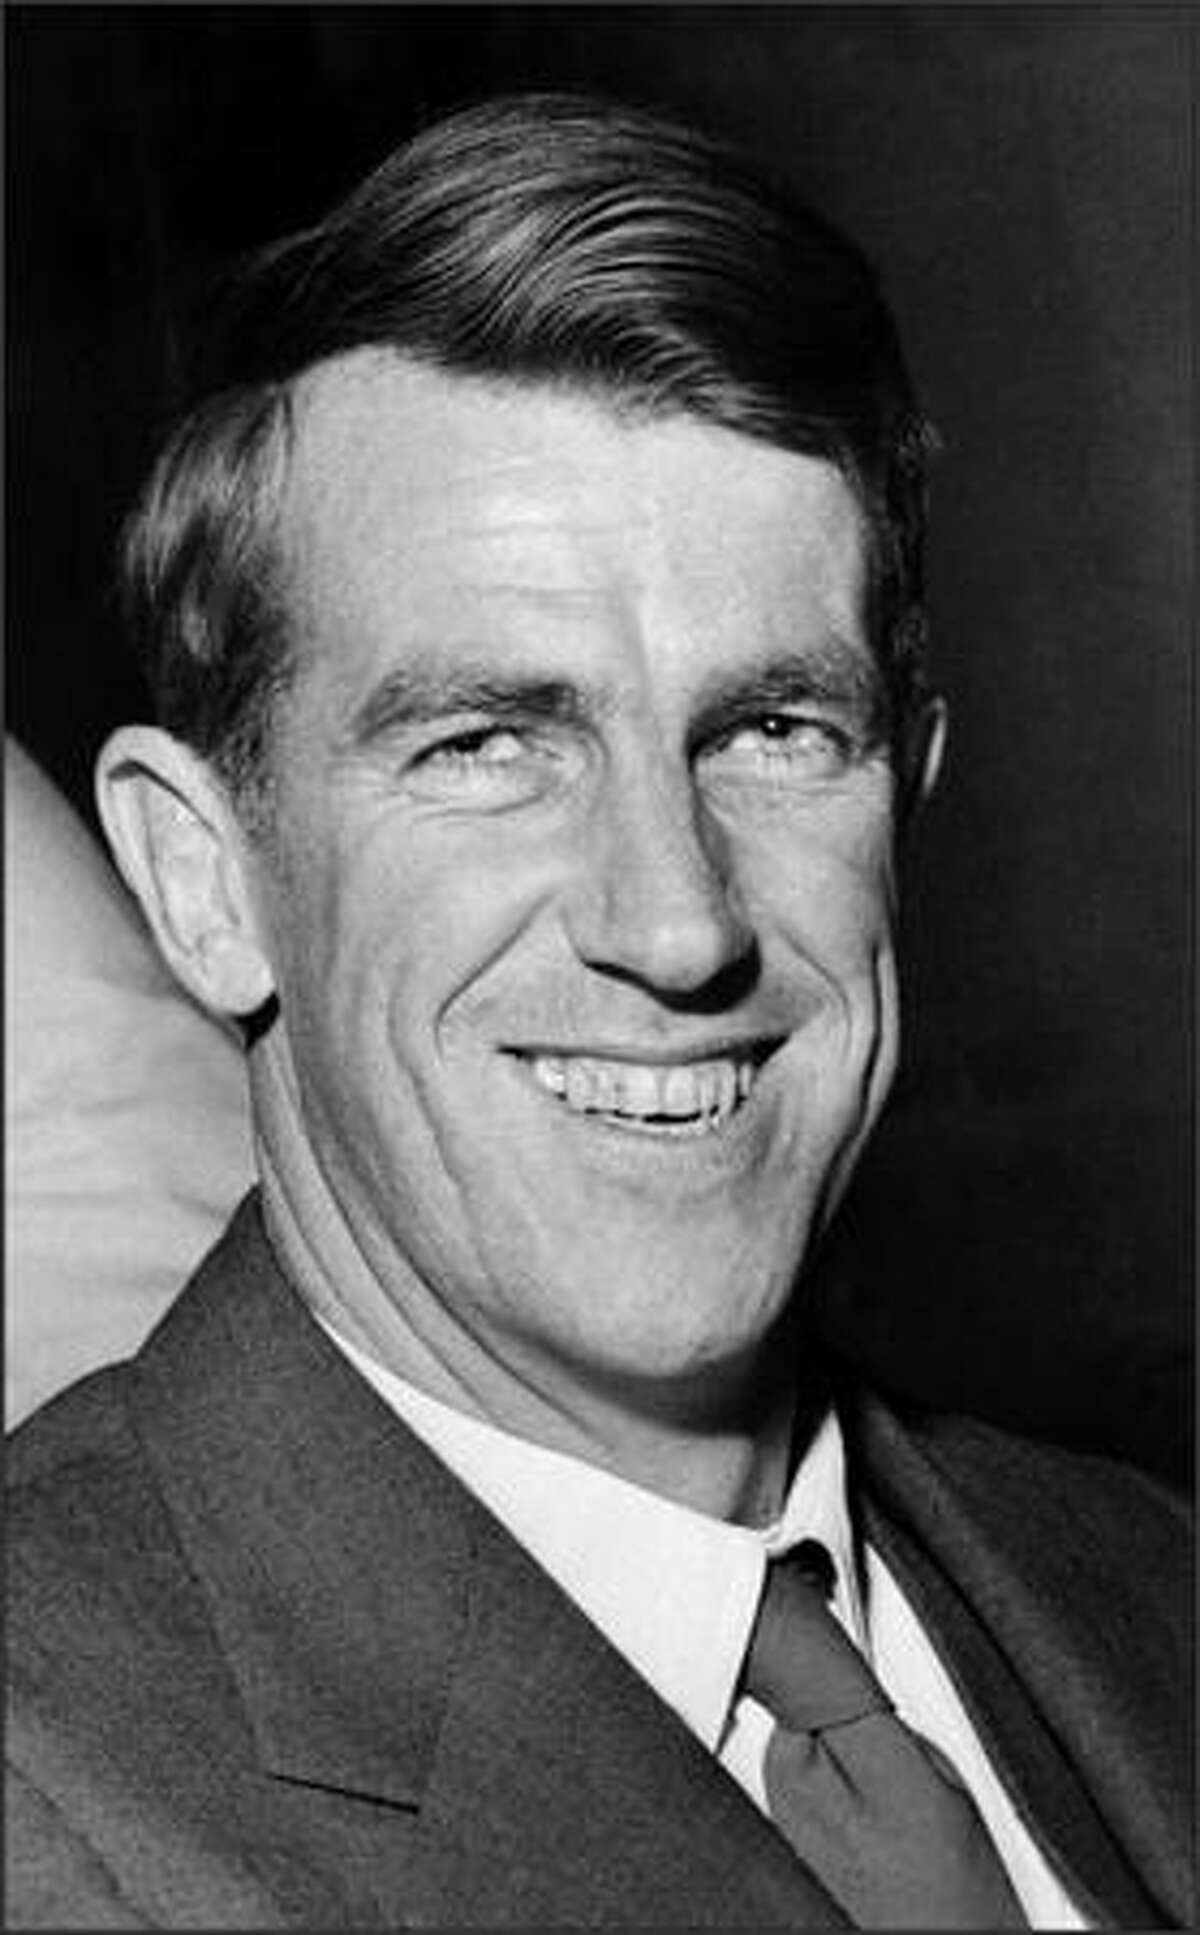 Undated and unlocated portrait of Sir Edmund Hillary.